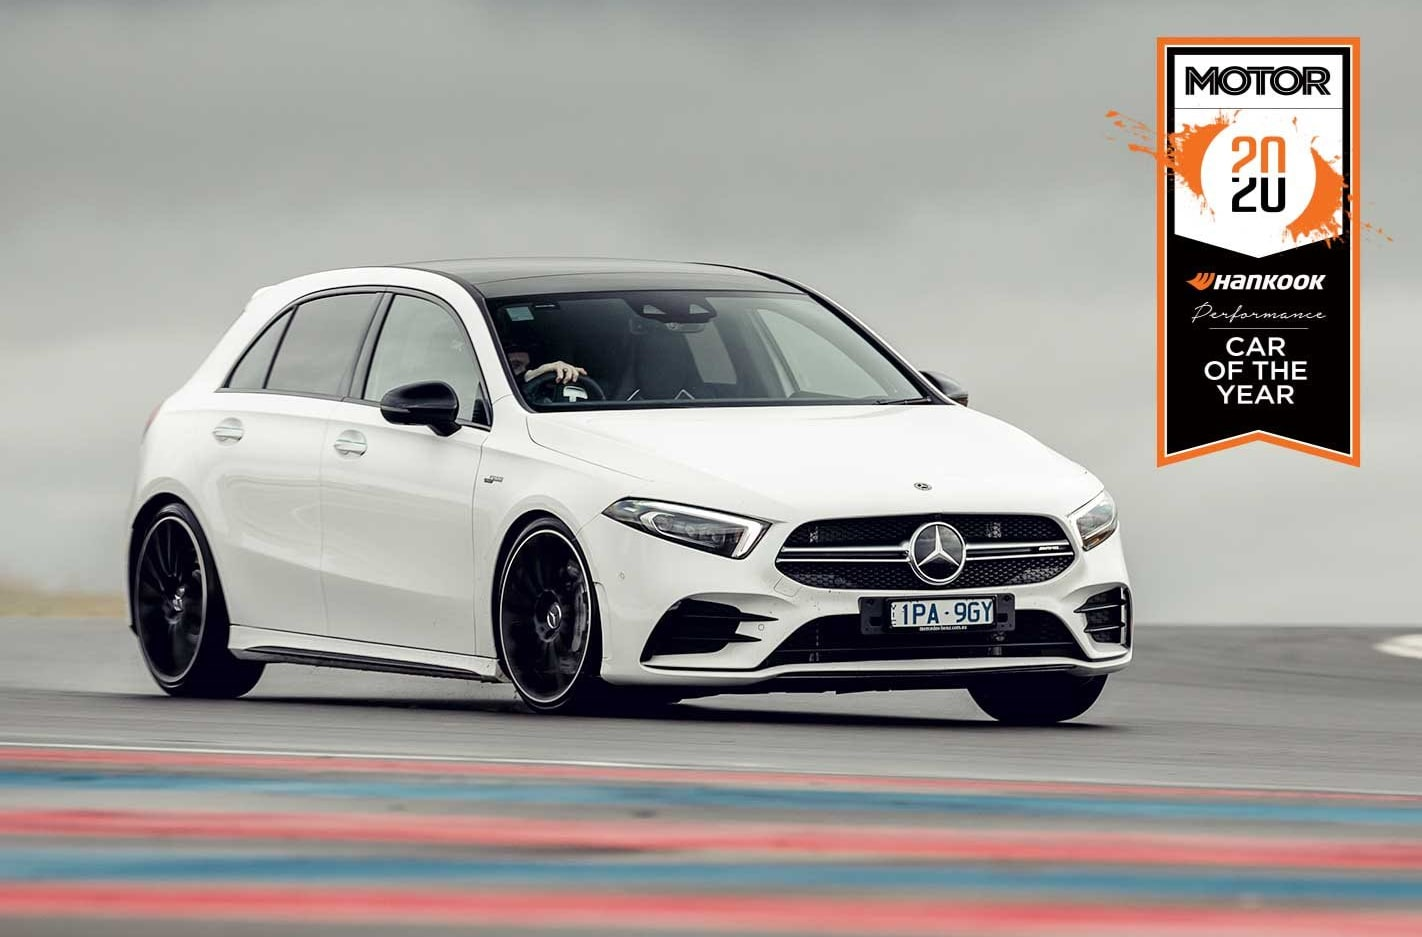 Mercedes-AMG A35 Performance Car of the Year 2020 results